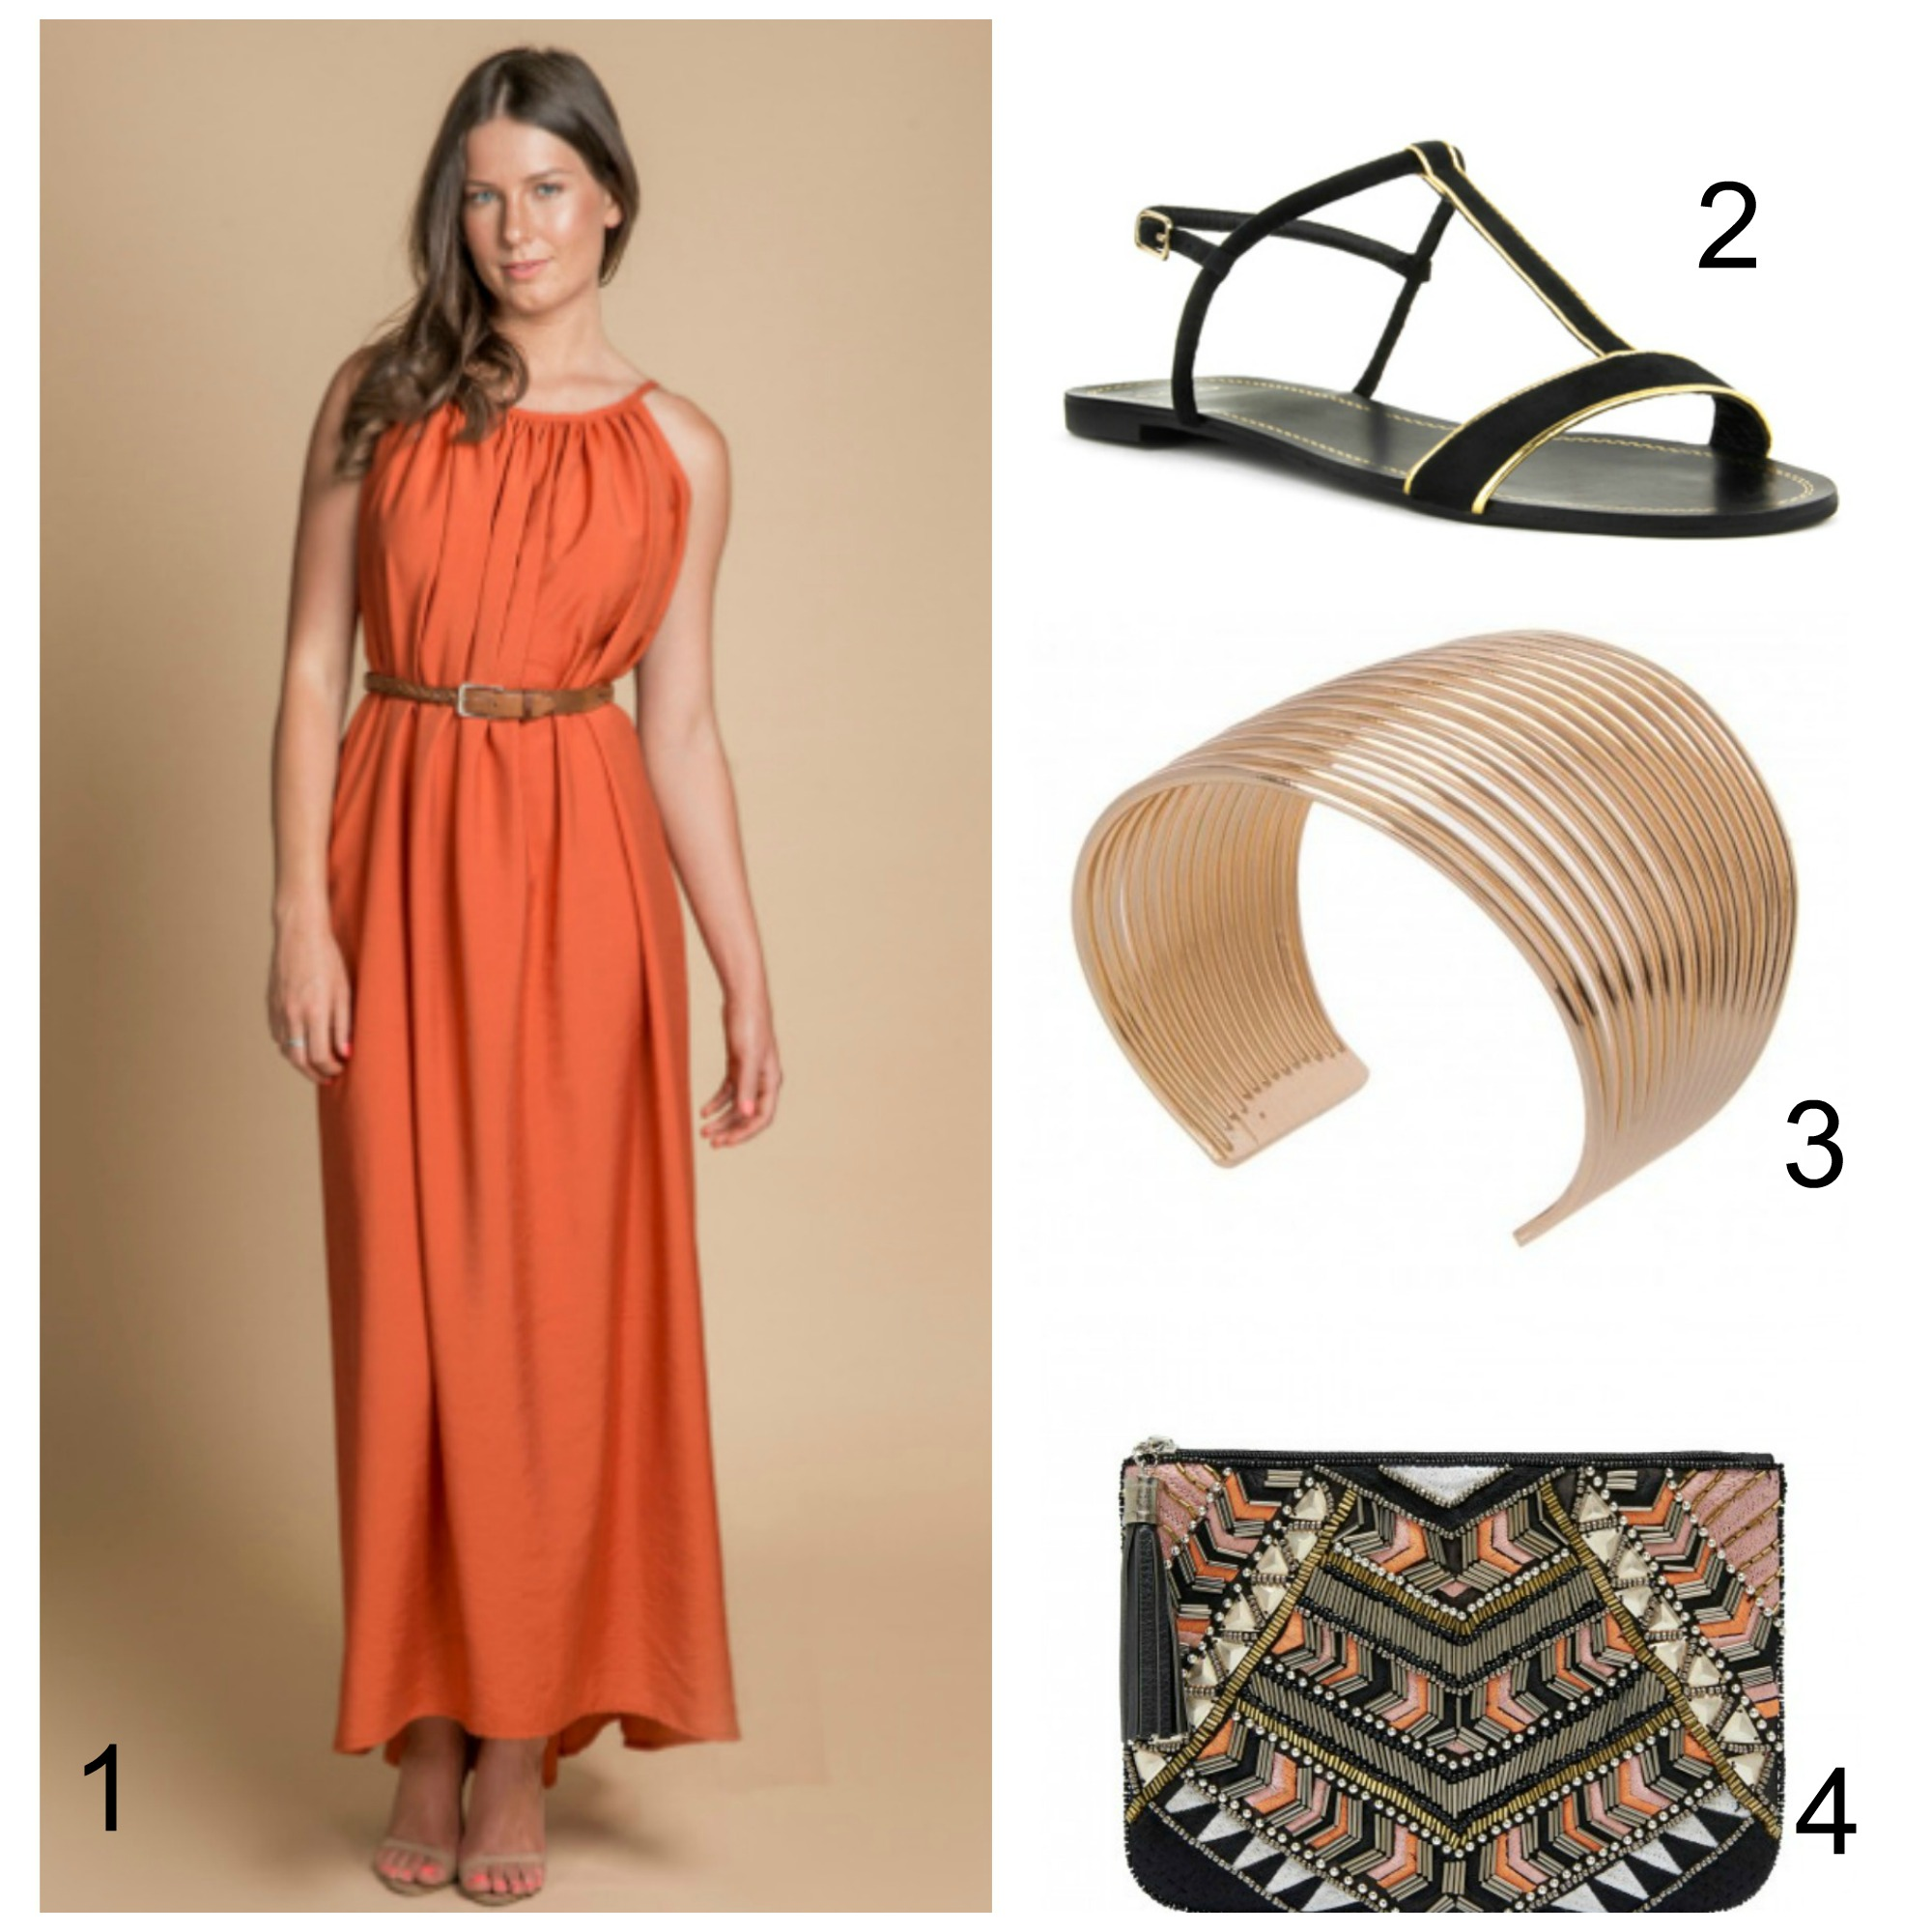 Christmas dress casual - Namoi Maxi Dress 2 Novo Rani Shoes 3 Gold Bangle 4 Forever New Joanna Clutch